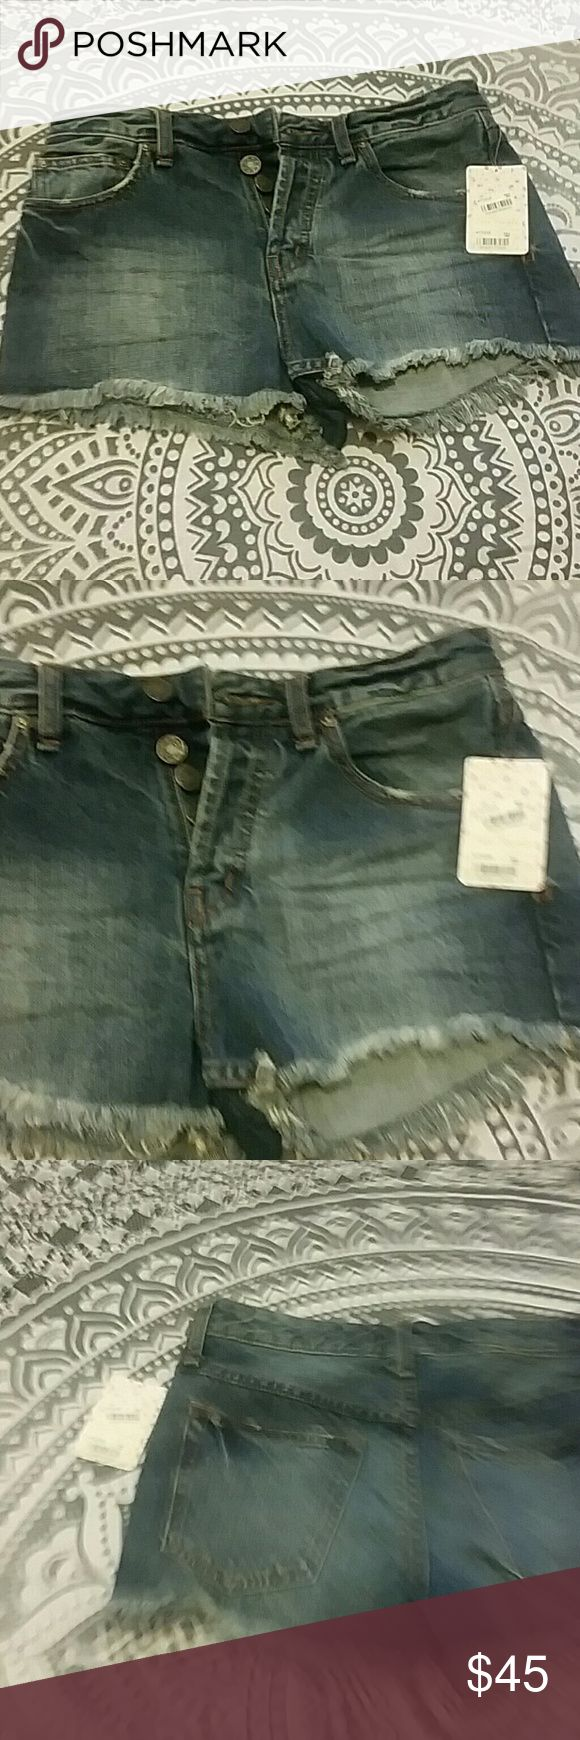 Free people cutoff jean denim shorts 27 nwt Nwt free people cutoff blue jean shorts , front and back pockets, button fly, belt loop, distressed details, smoke and pet free home. Size 27 womens, runs true to size Free People Shorts Jean Shorts